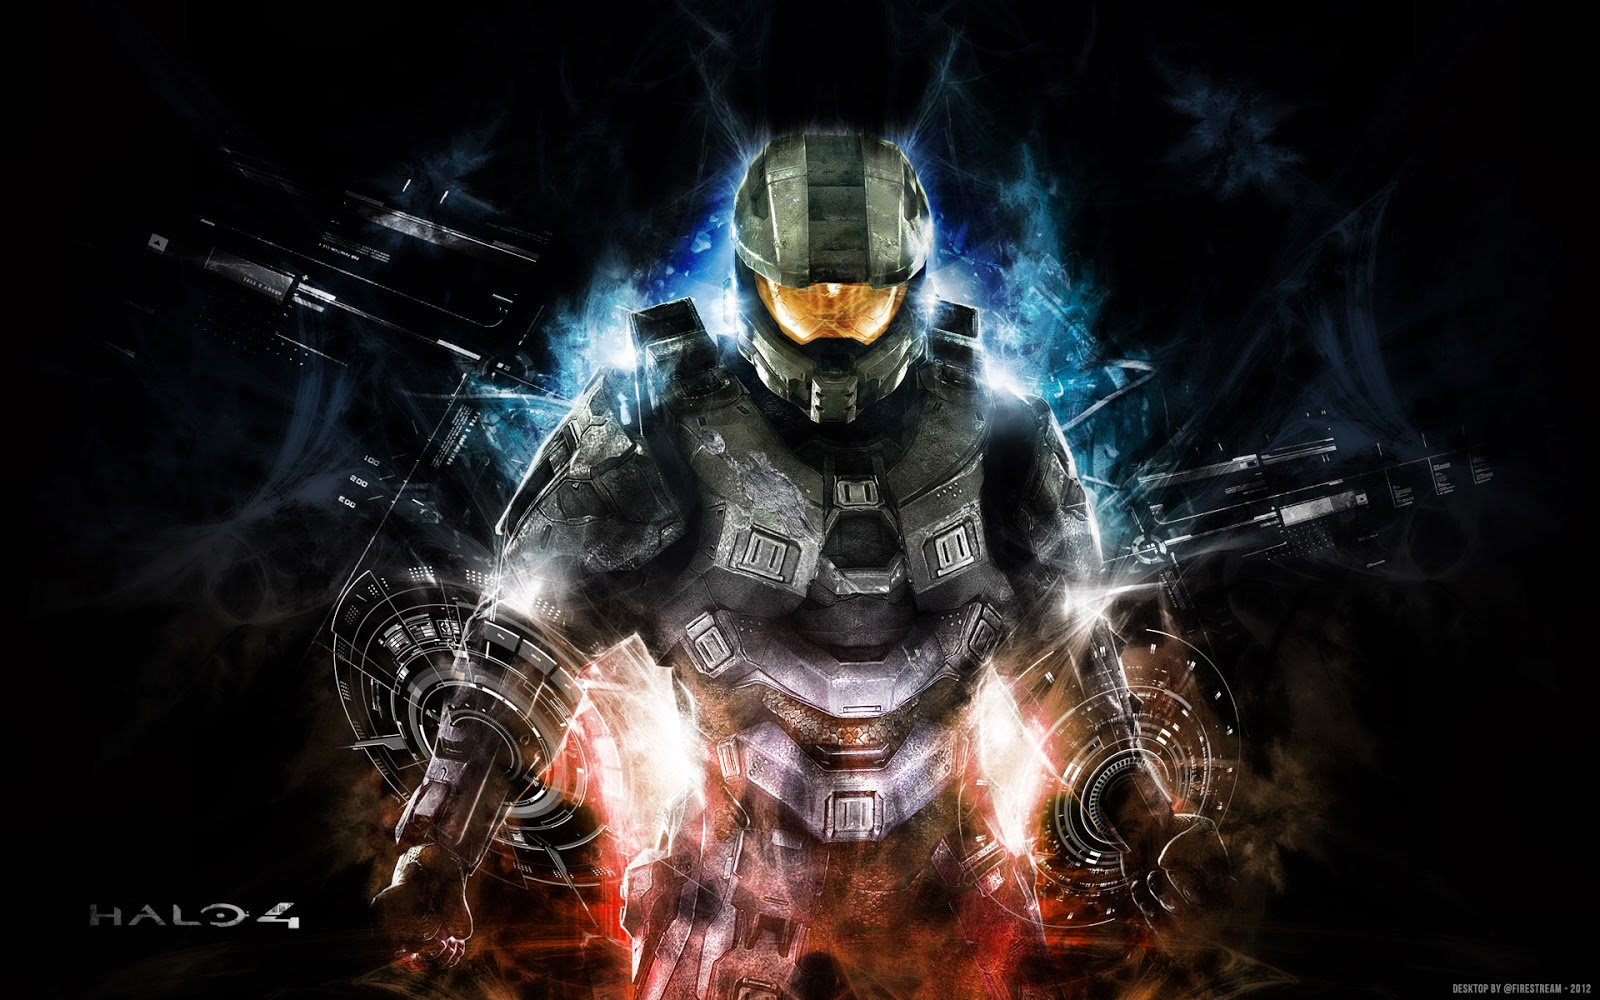 Hd wallpapers blog halo 4 master chief wallpapers halo 4 master chief wallpapers voltagebd Choice Image